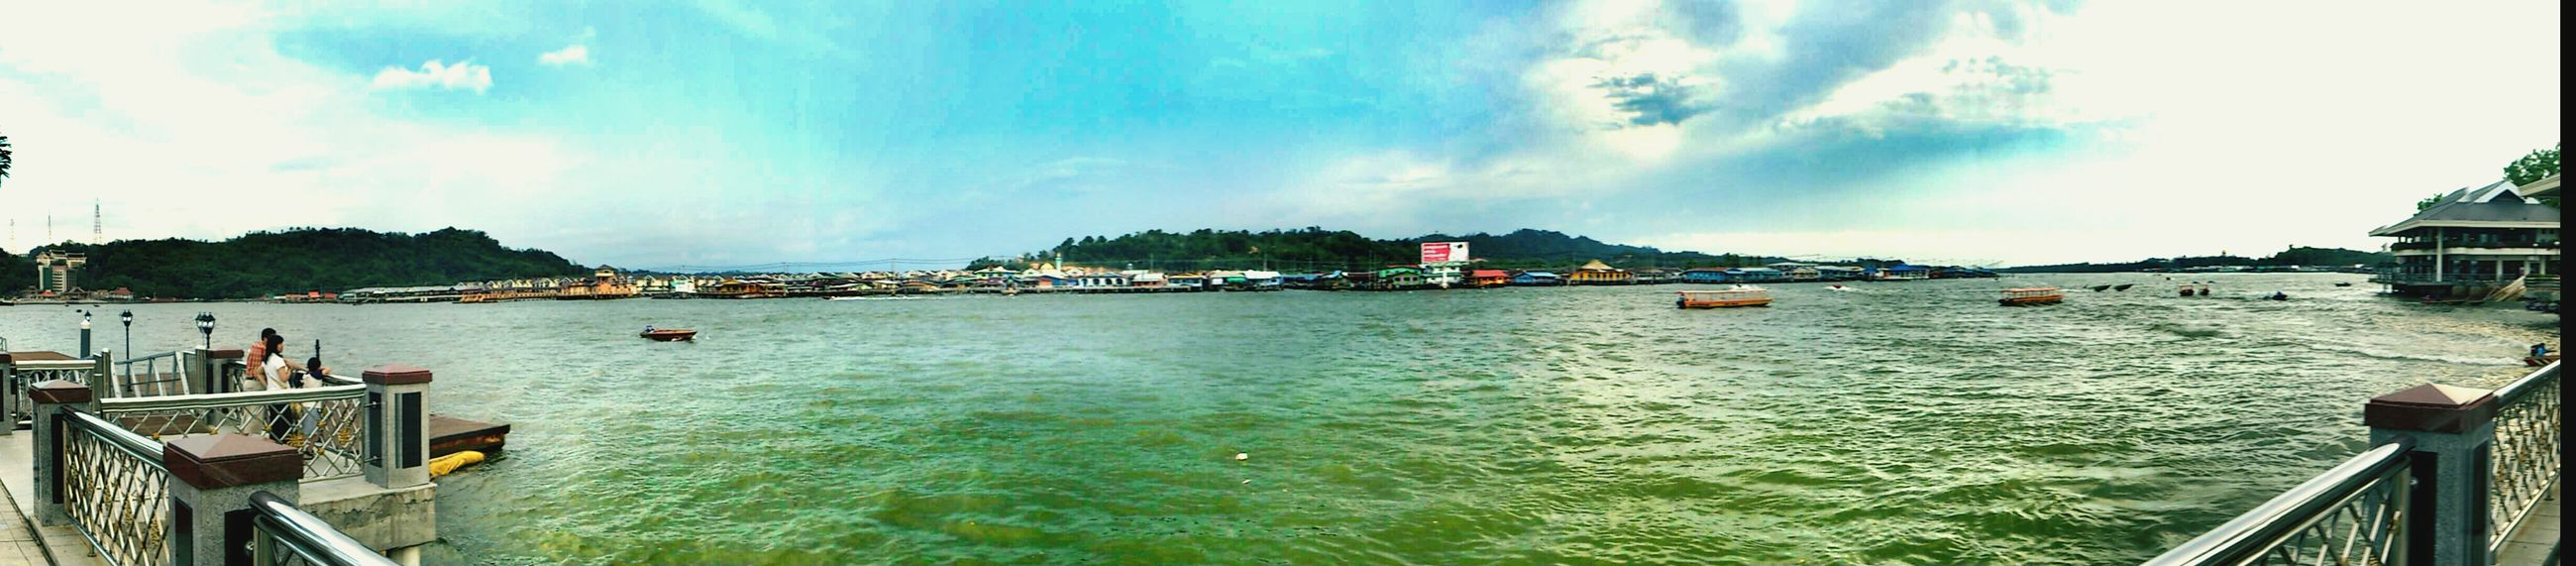 Panorama-Pic of Kampong Ayer a.k.a Water Village at Brunei Darussalam . Open Edit Check This Out EyeEm Best Shots EyeEm Brunei Brunei Panorama